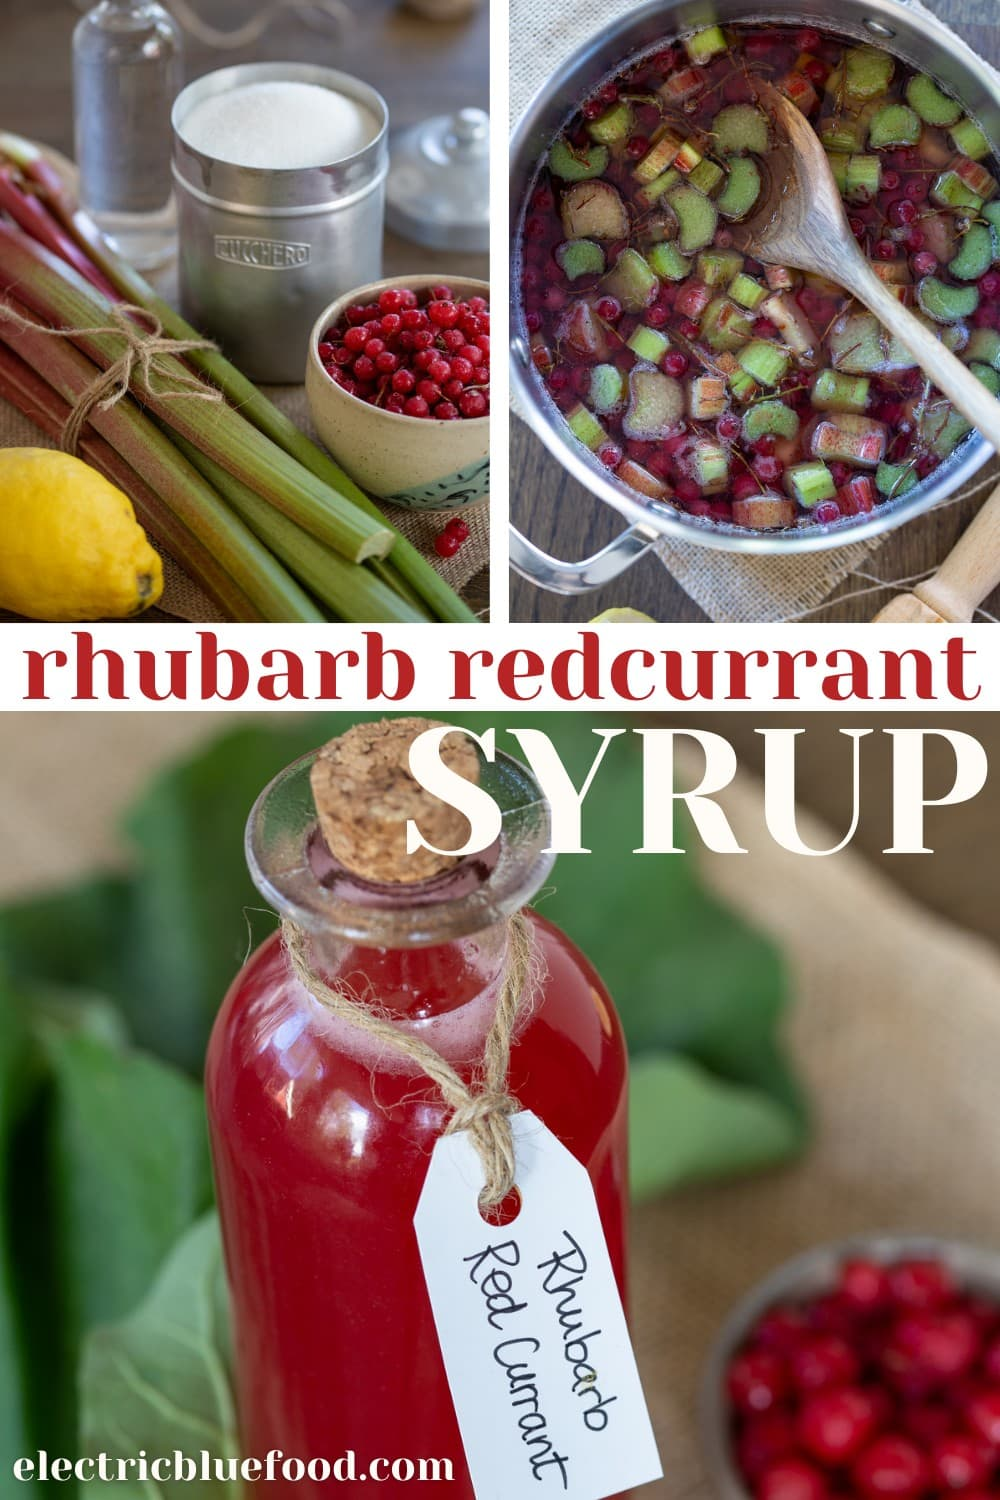 Homemade rhubarb and redcurrant syrup to use in drinks, cocktails or even to flavour hot tea.